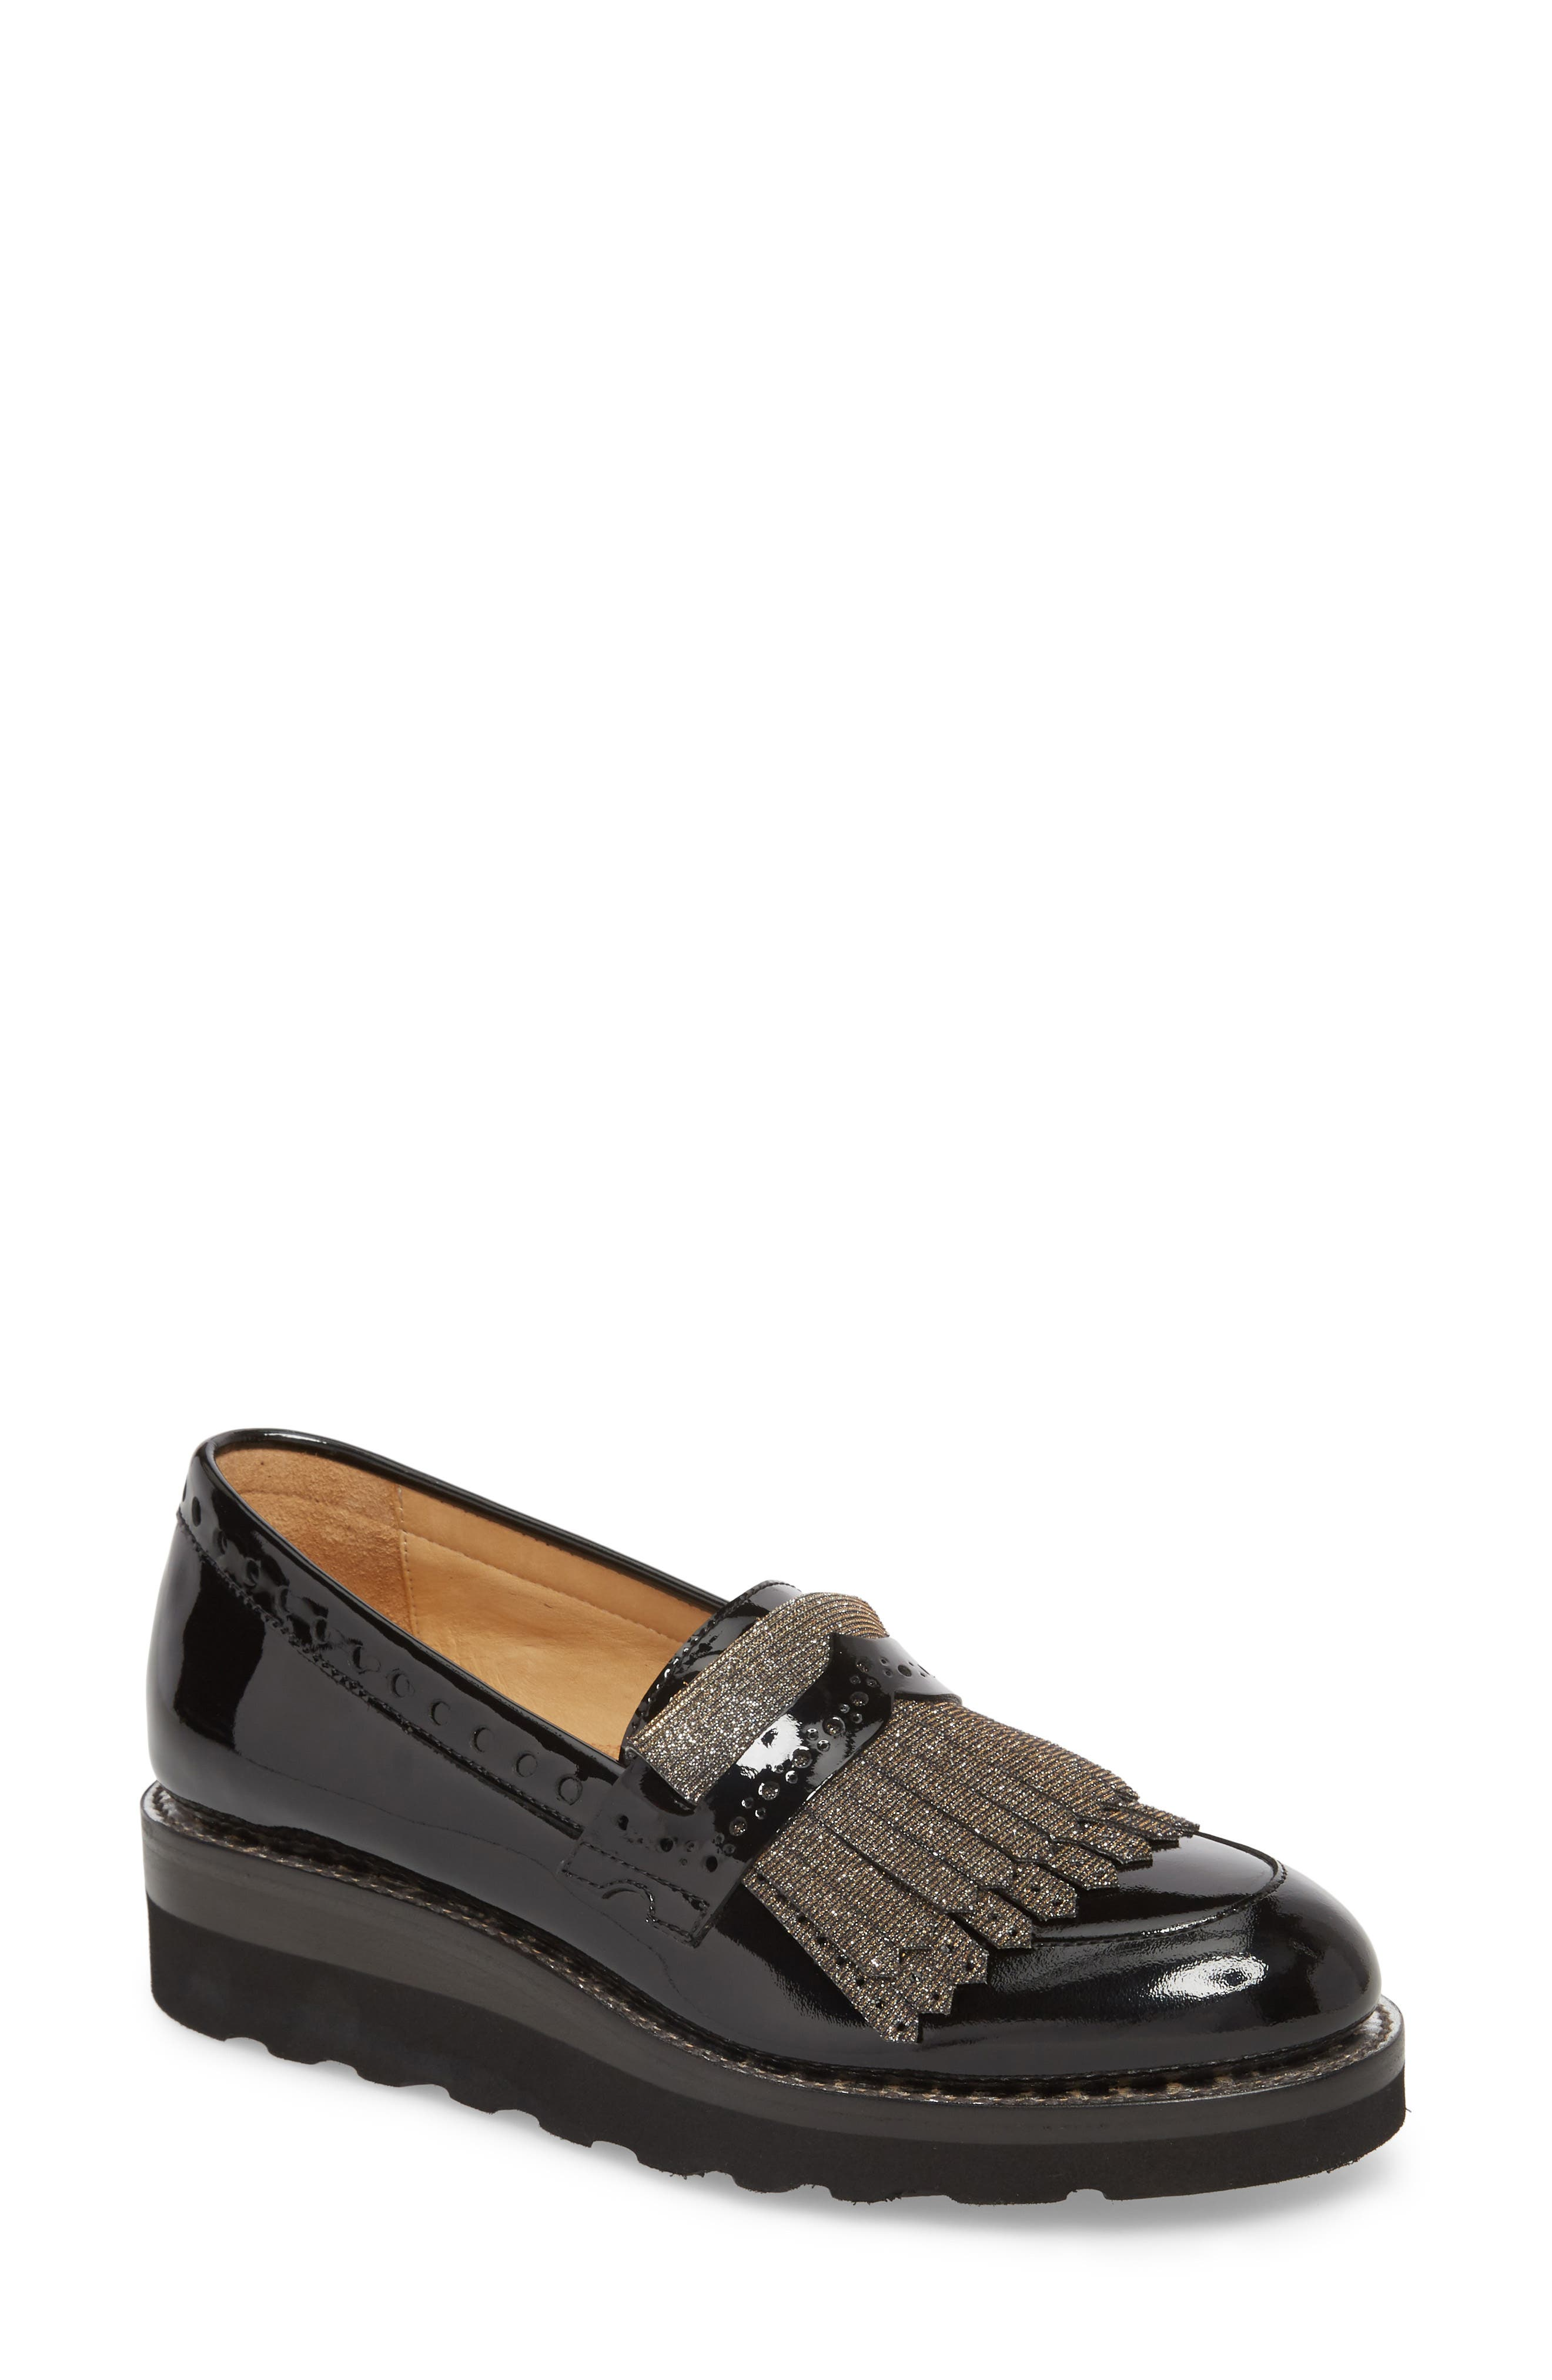 THE OFFICE OF ANGELA SCOTT Mr. Pennywise Wedge Loafer in Black Metallic